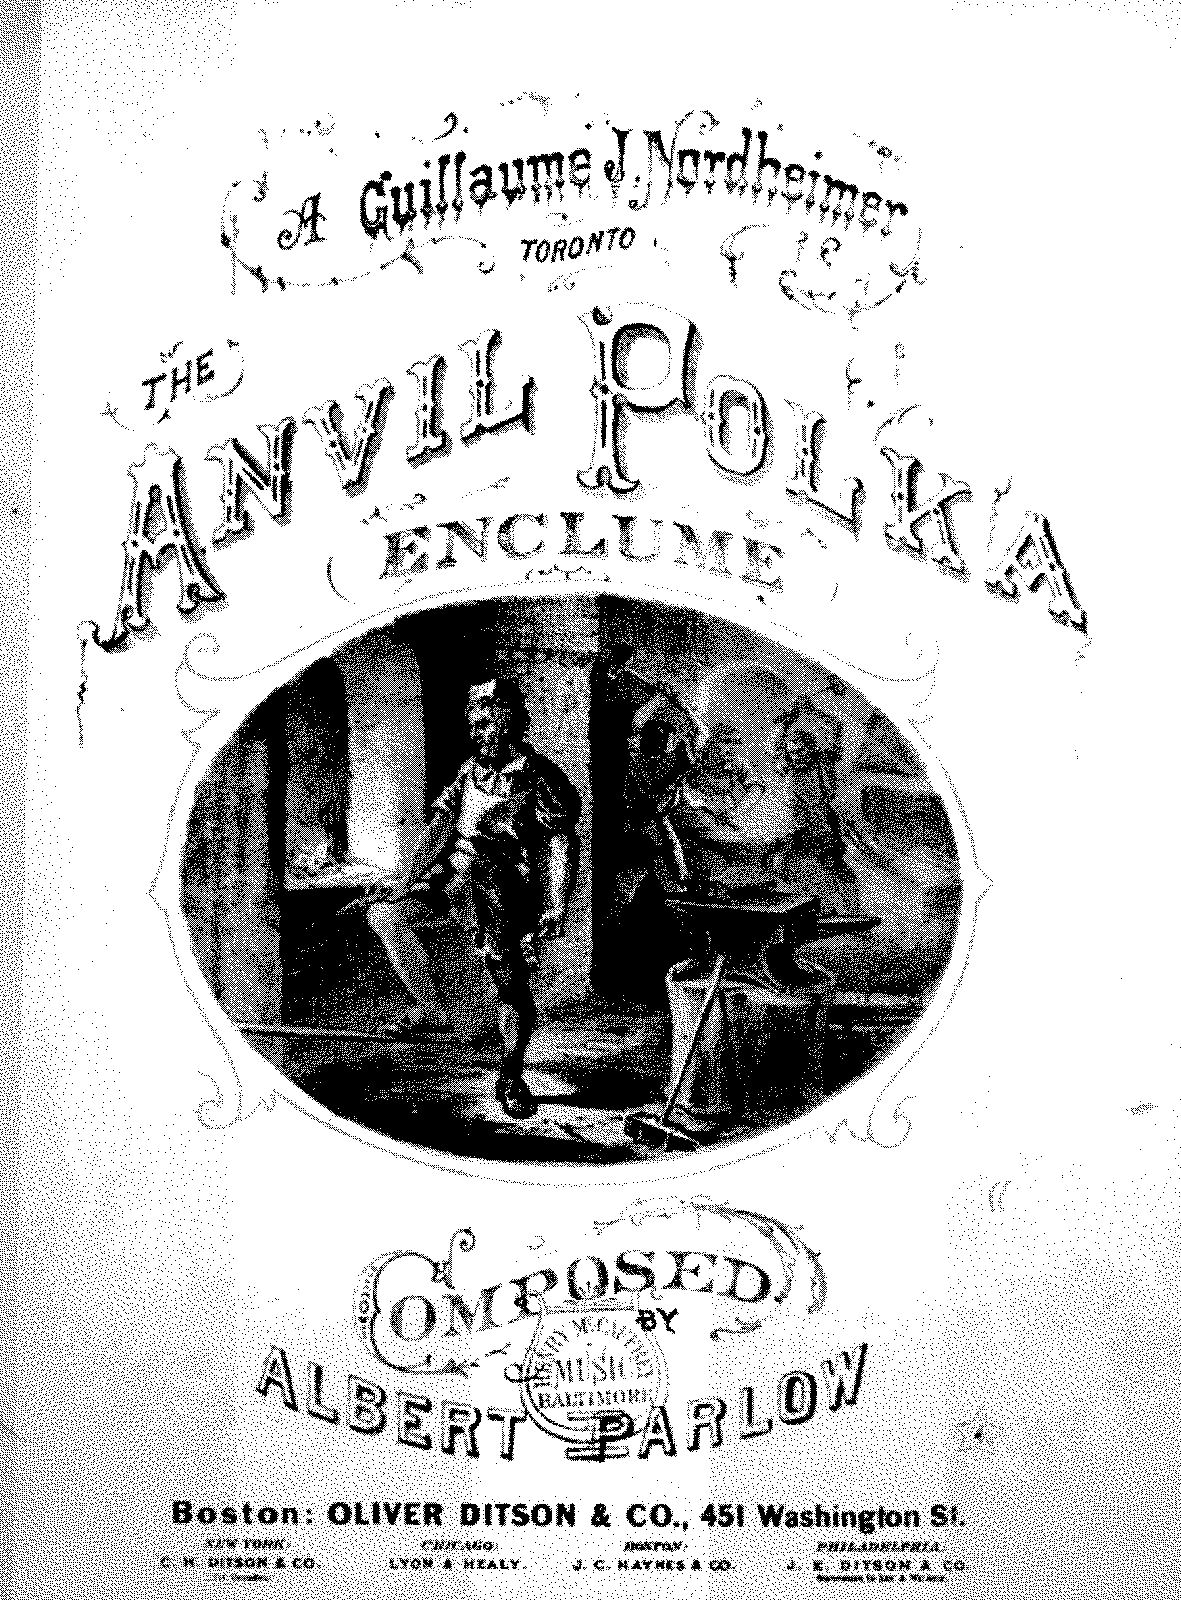 PMLP476462-Albert Parlow - The Anvil Polka (Enclume).pdf